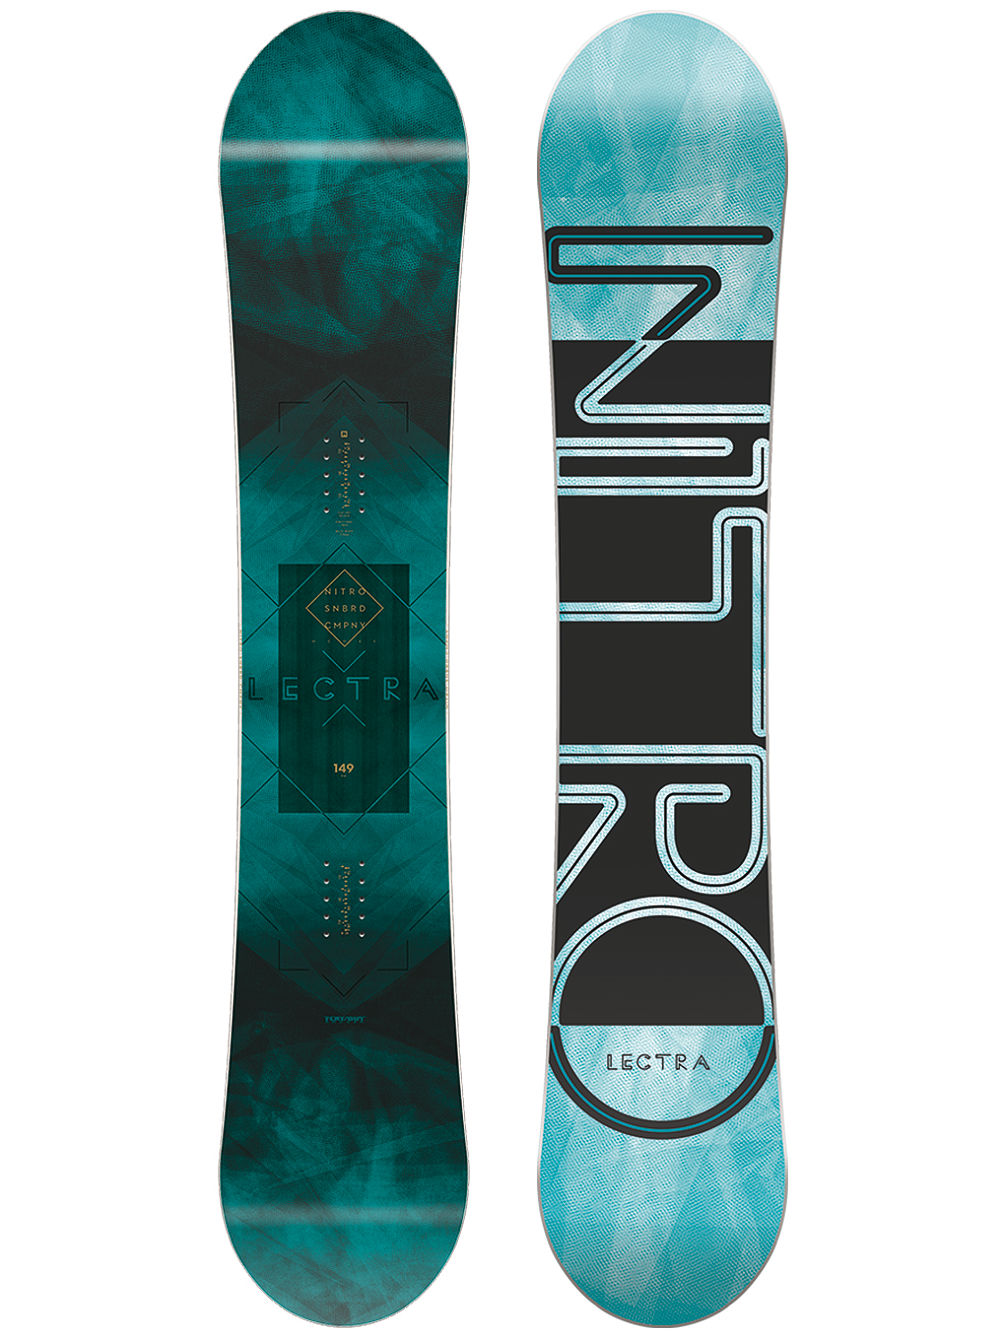 Lectra 149 2018 Snowboard